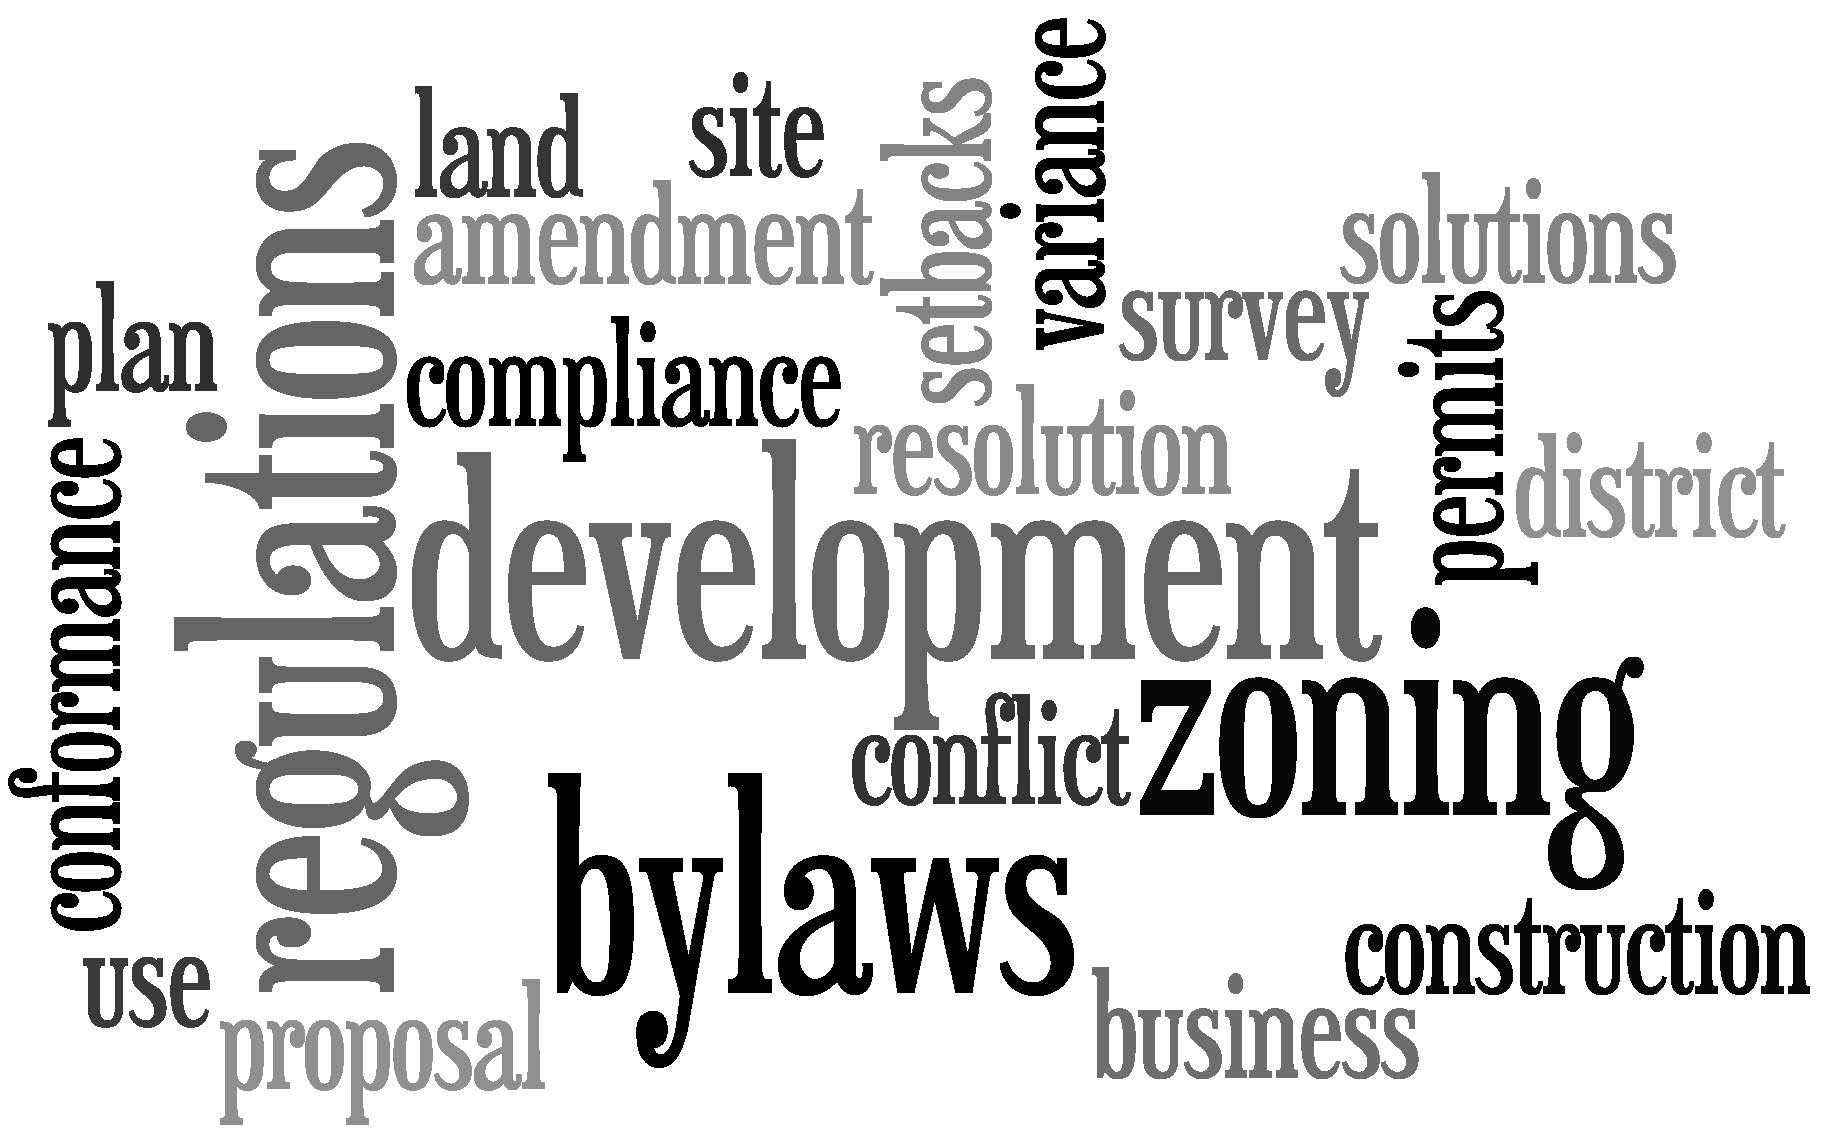 rezoning wordle